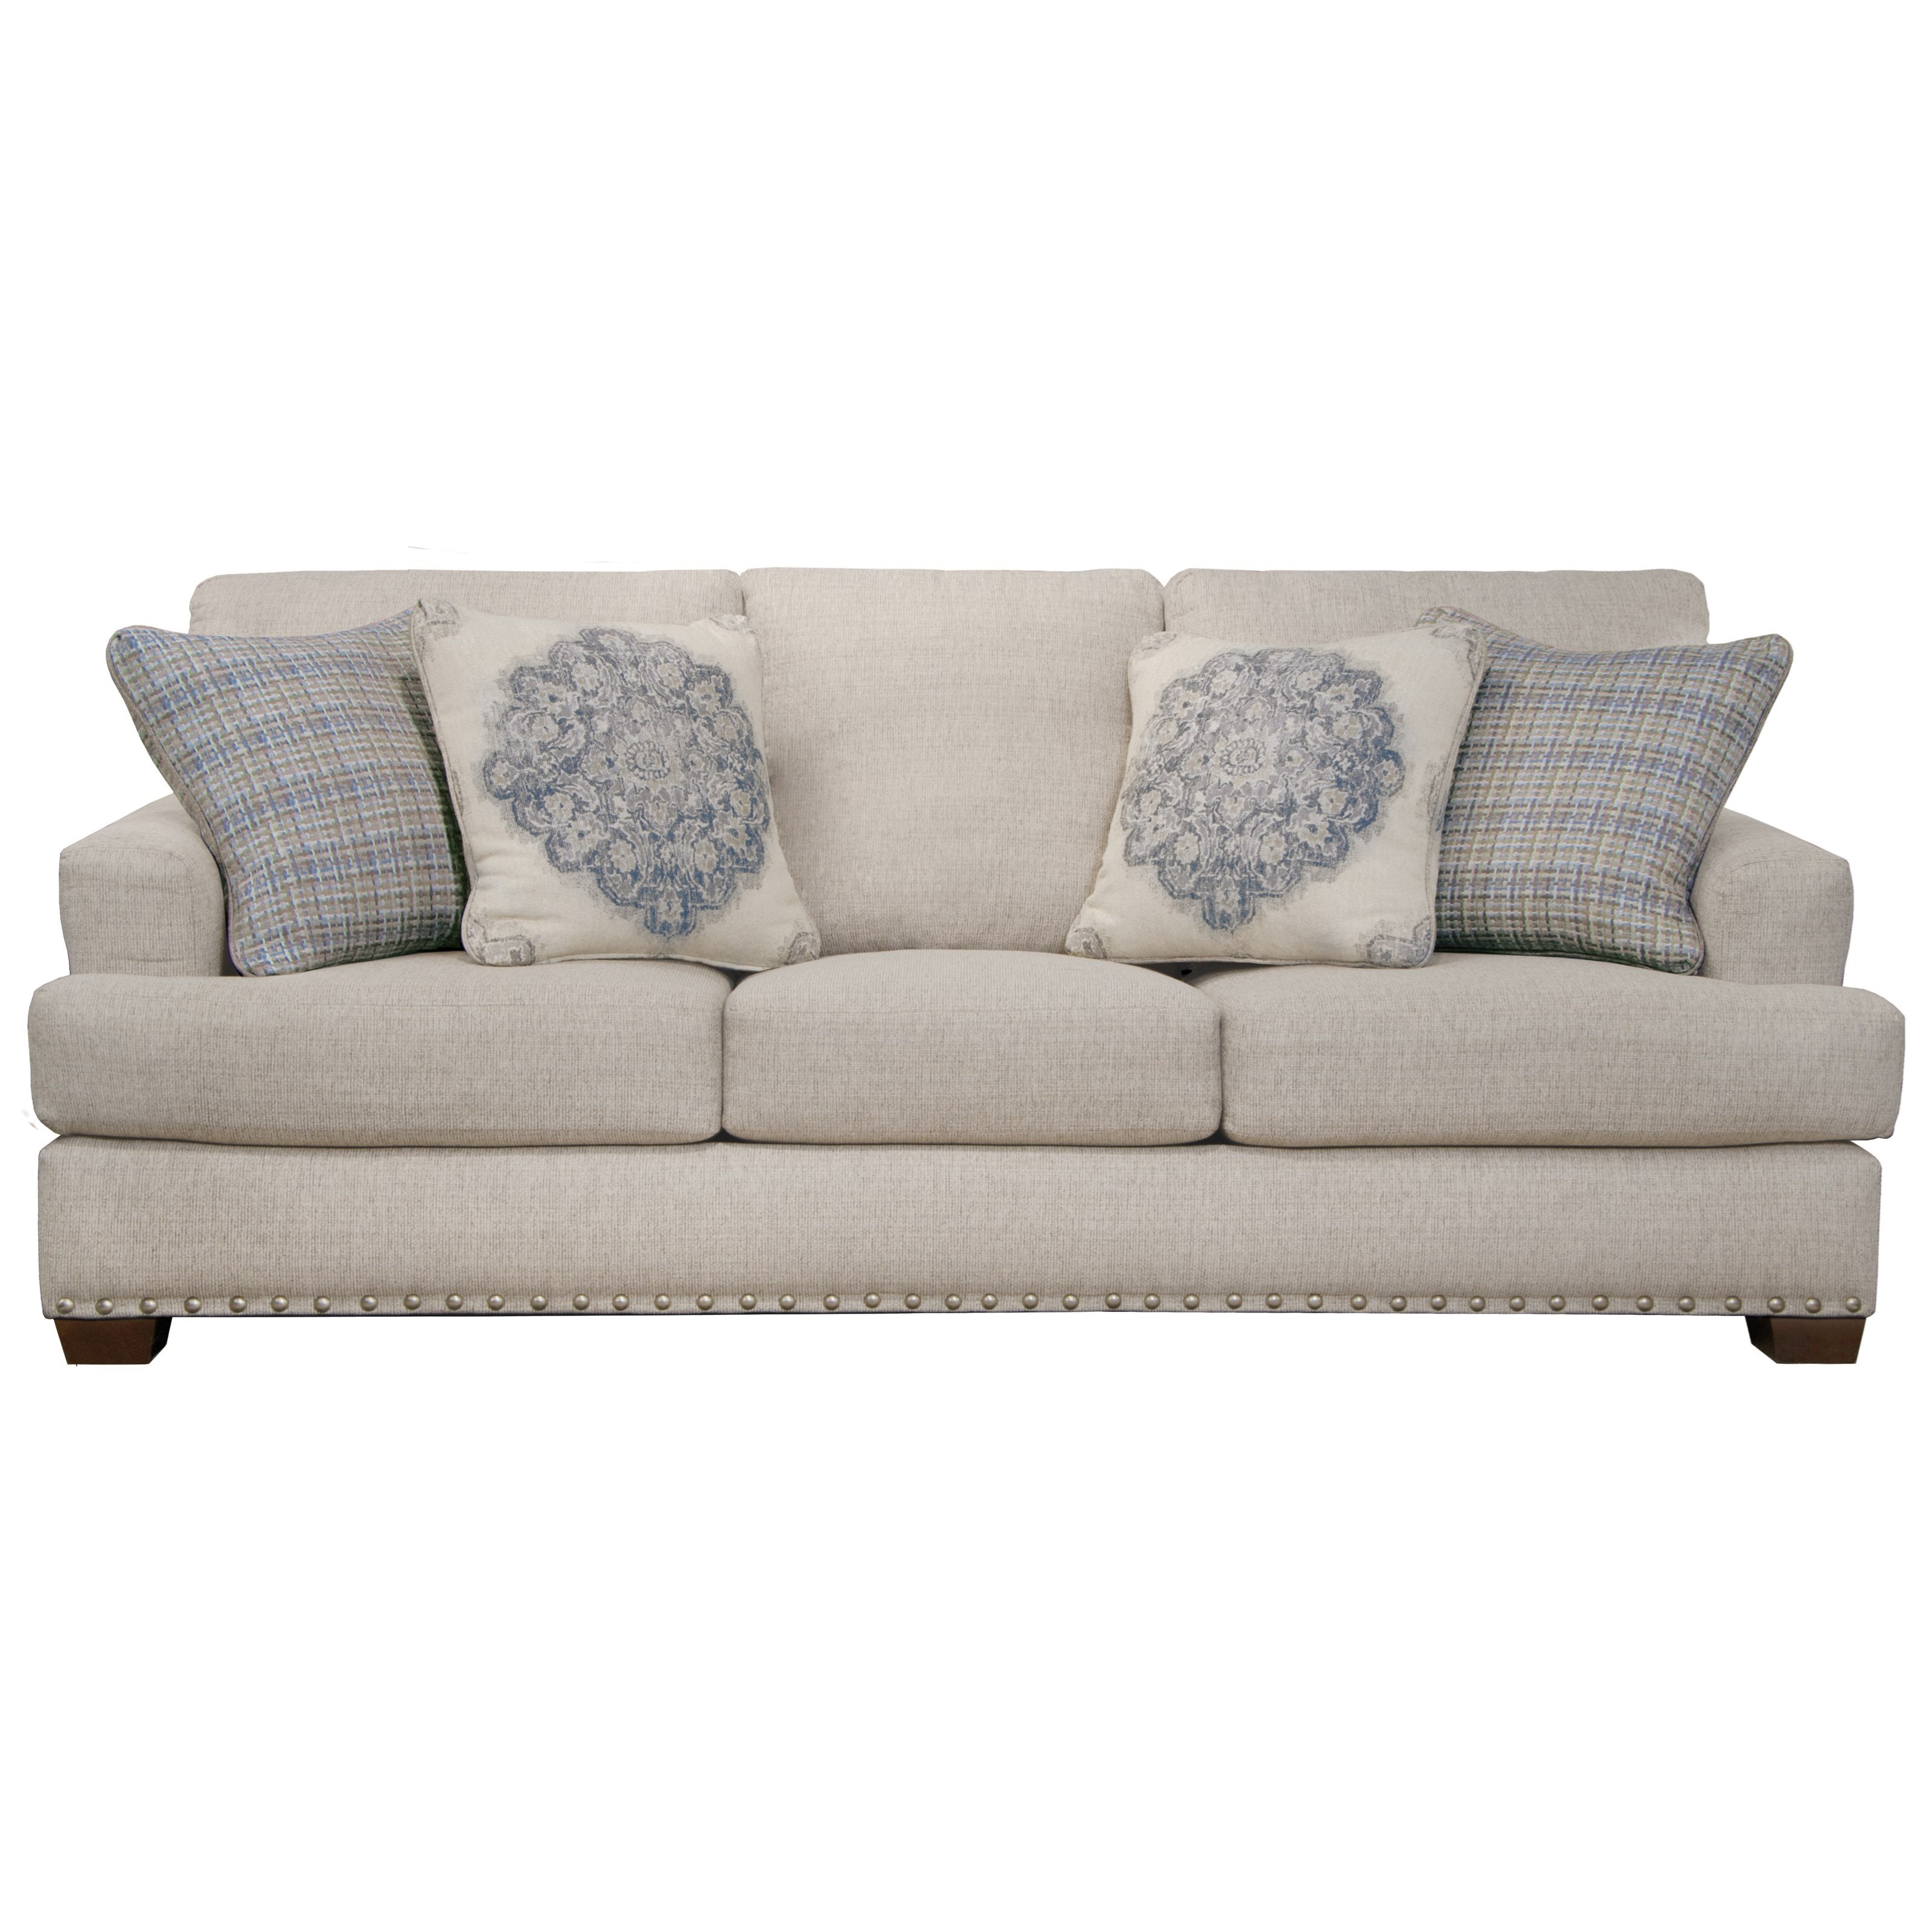 Newberg Sofa by Jackson Furniture at Northeast Factory Direct